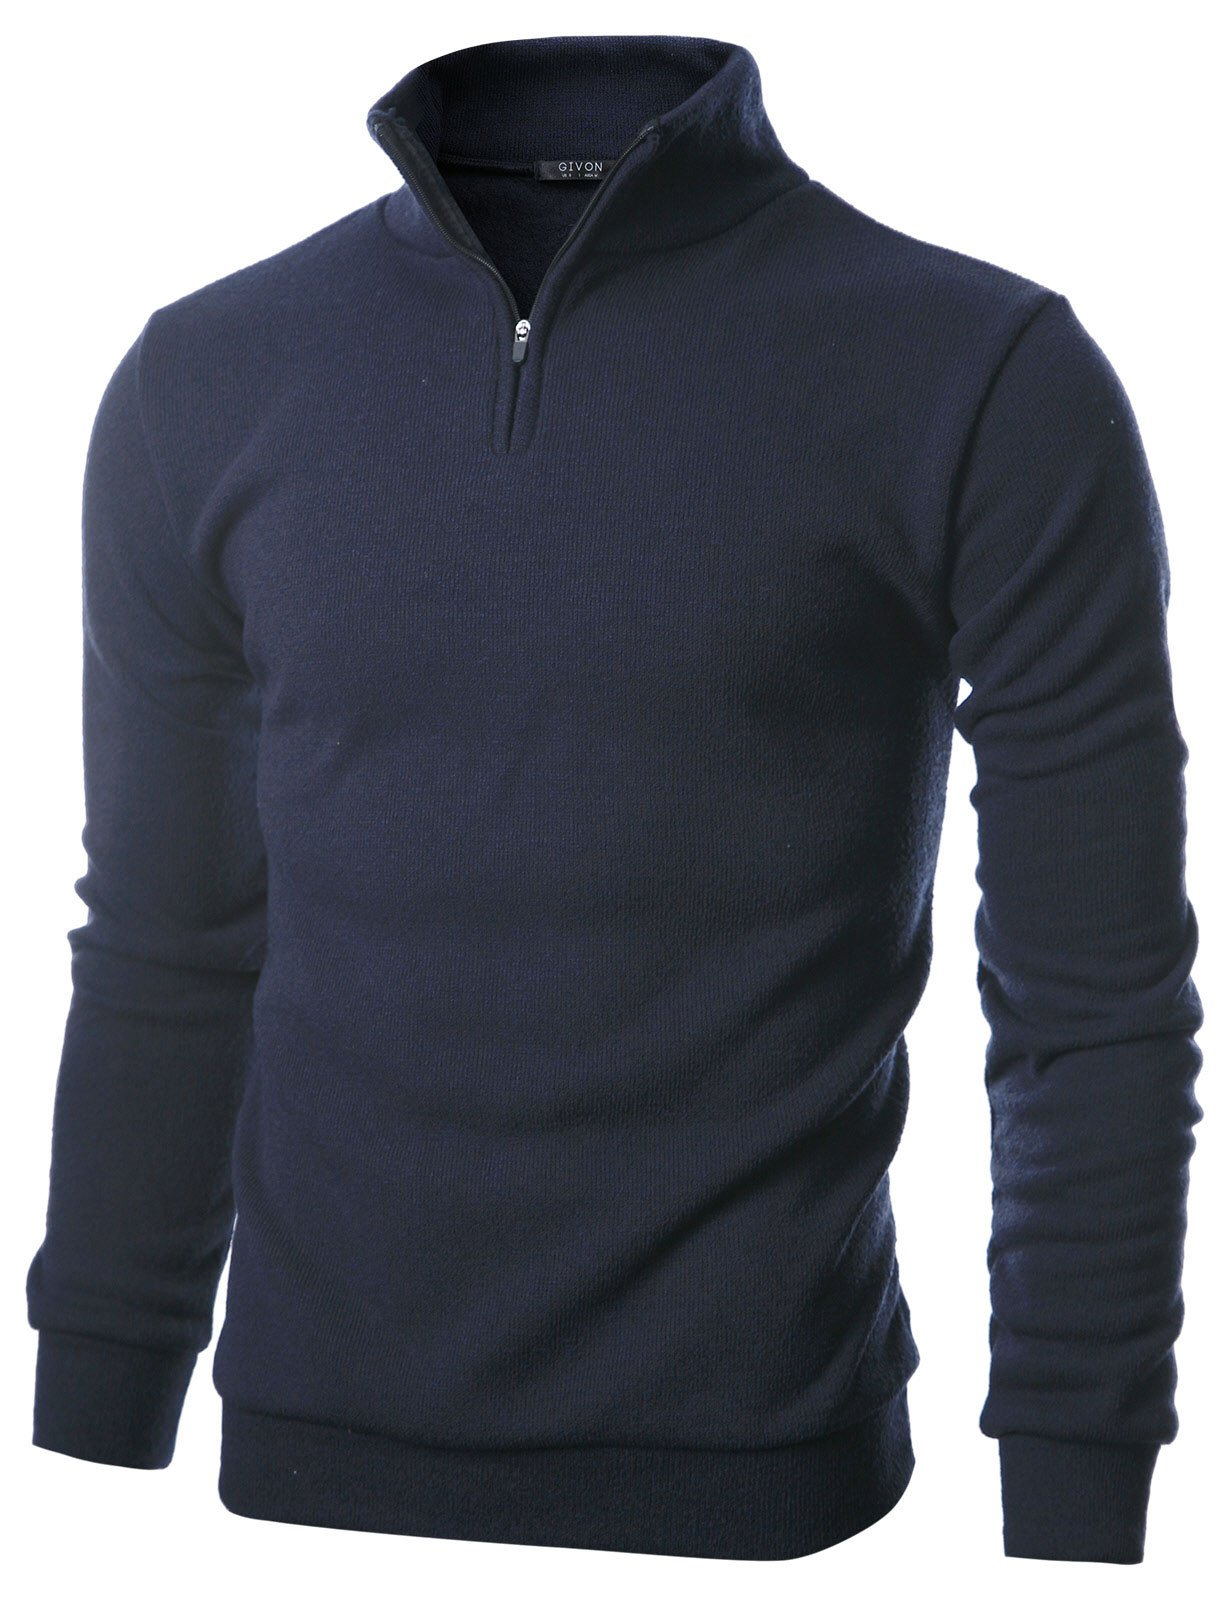 GIVON Mens Slim Fit Quarter Zip Up Long Sleeve Mock Neck Pullover Sweater/DCP046-NAVY-3XL